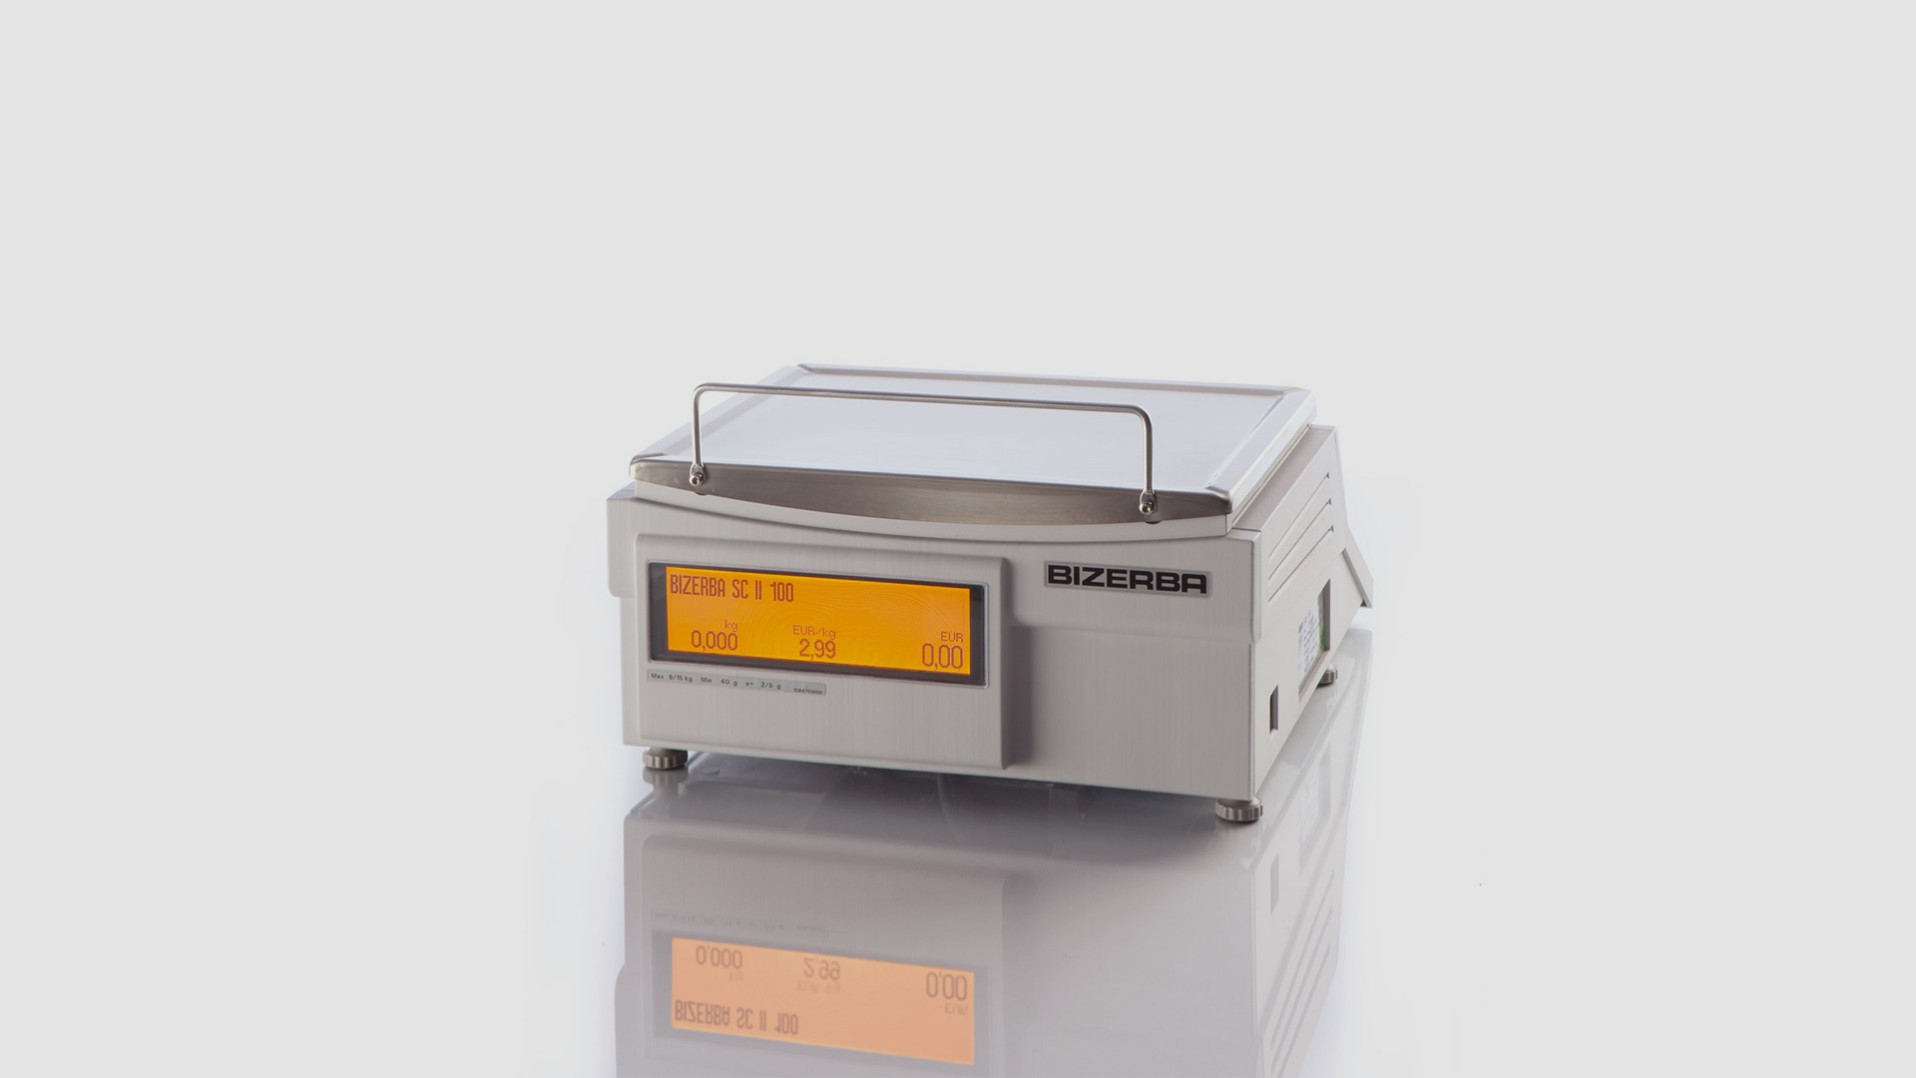 Counter top scale SC II 100 rear view